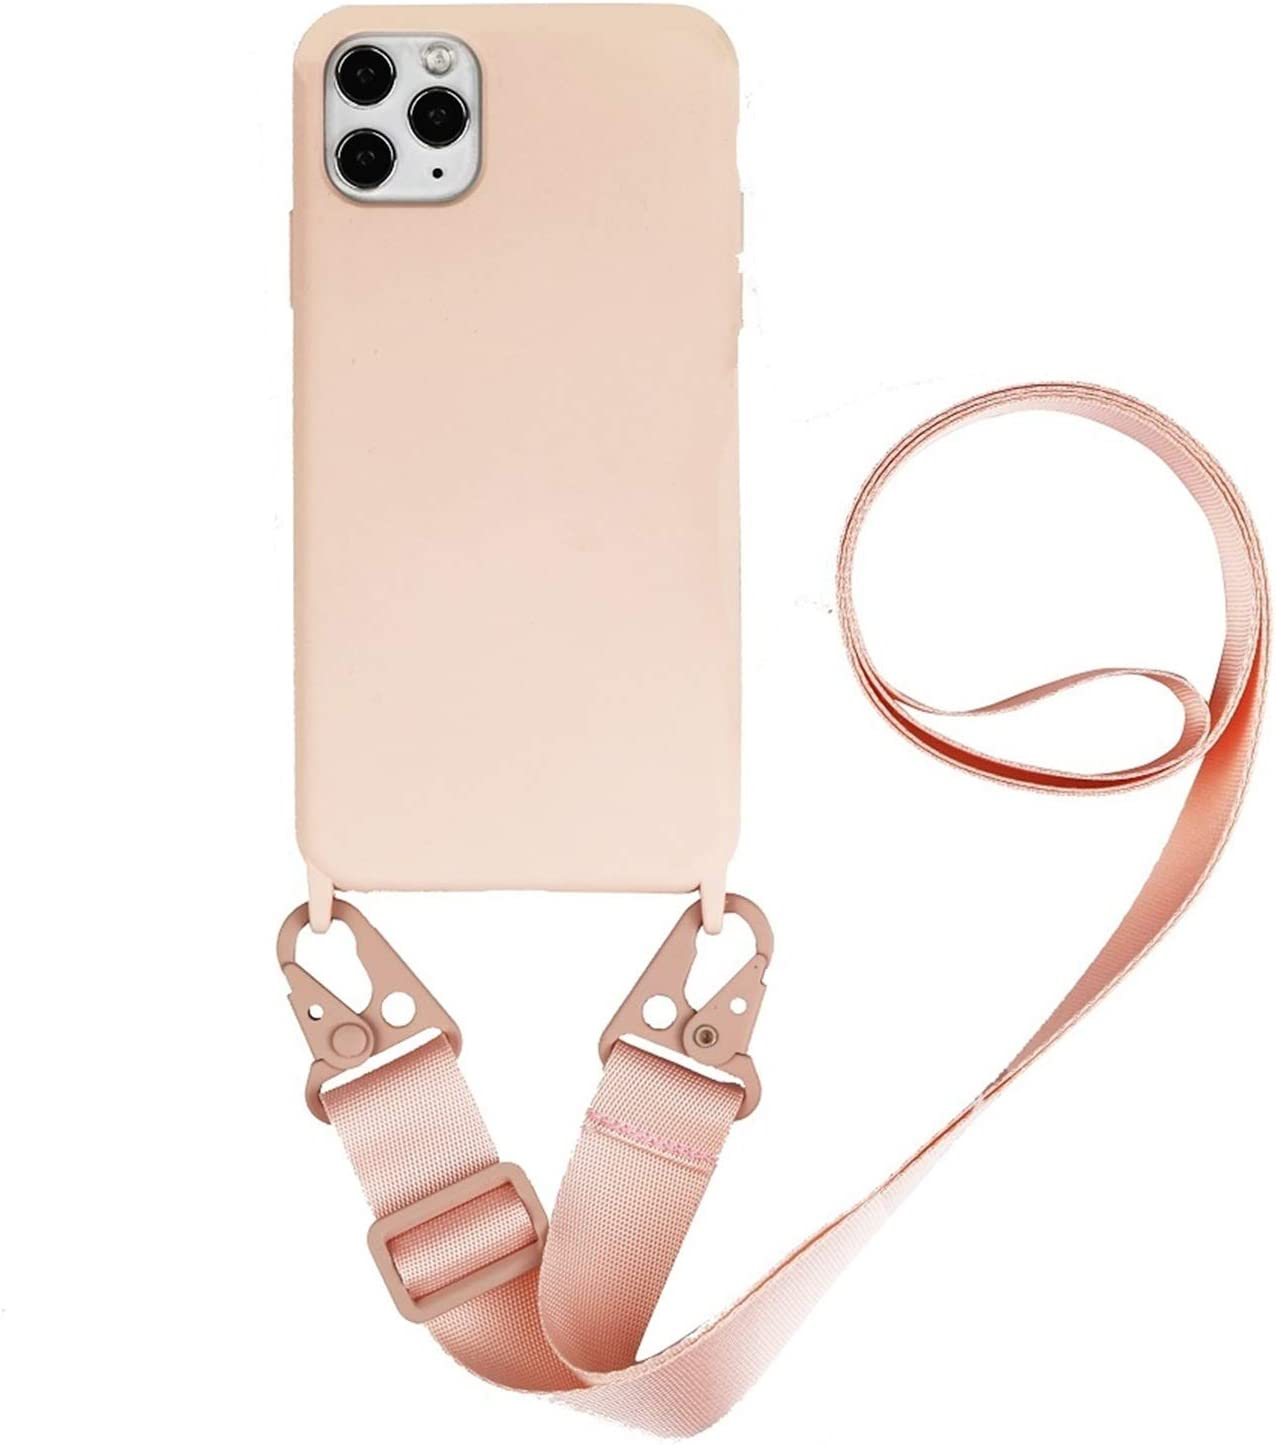 Zija Crossbody Necklace Holder Phone Case for iPhone 11 pro XS max Xr 6s 7 8 Plus Lanyard Silicone Case Cover with Cord Strap Rope (Color : Pink Strap, Material : for iPhone12 Mini)